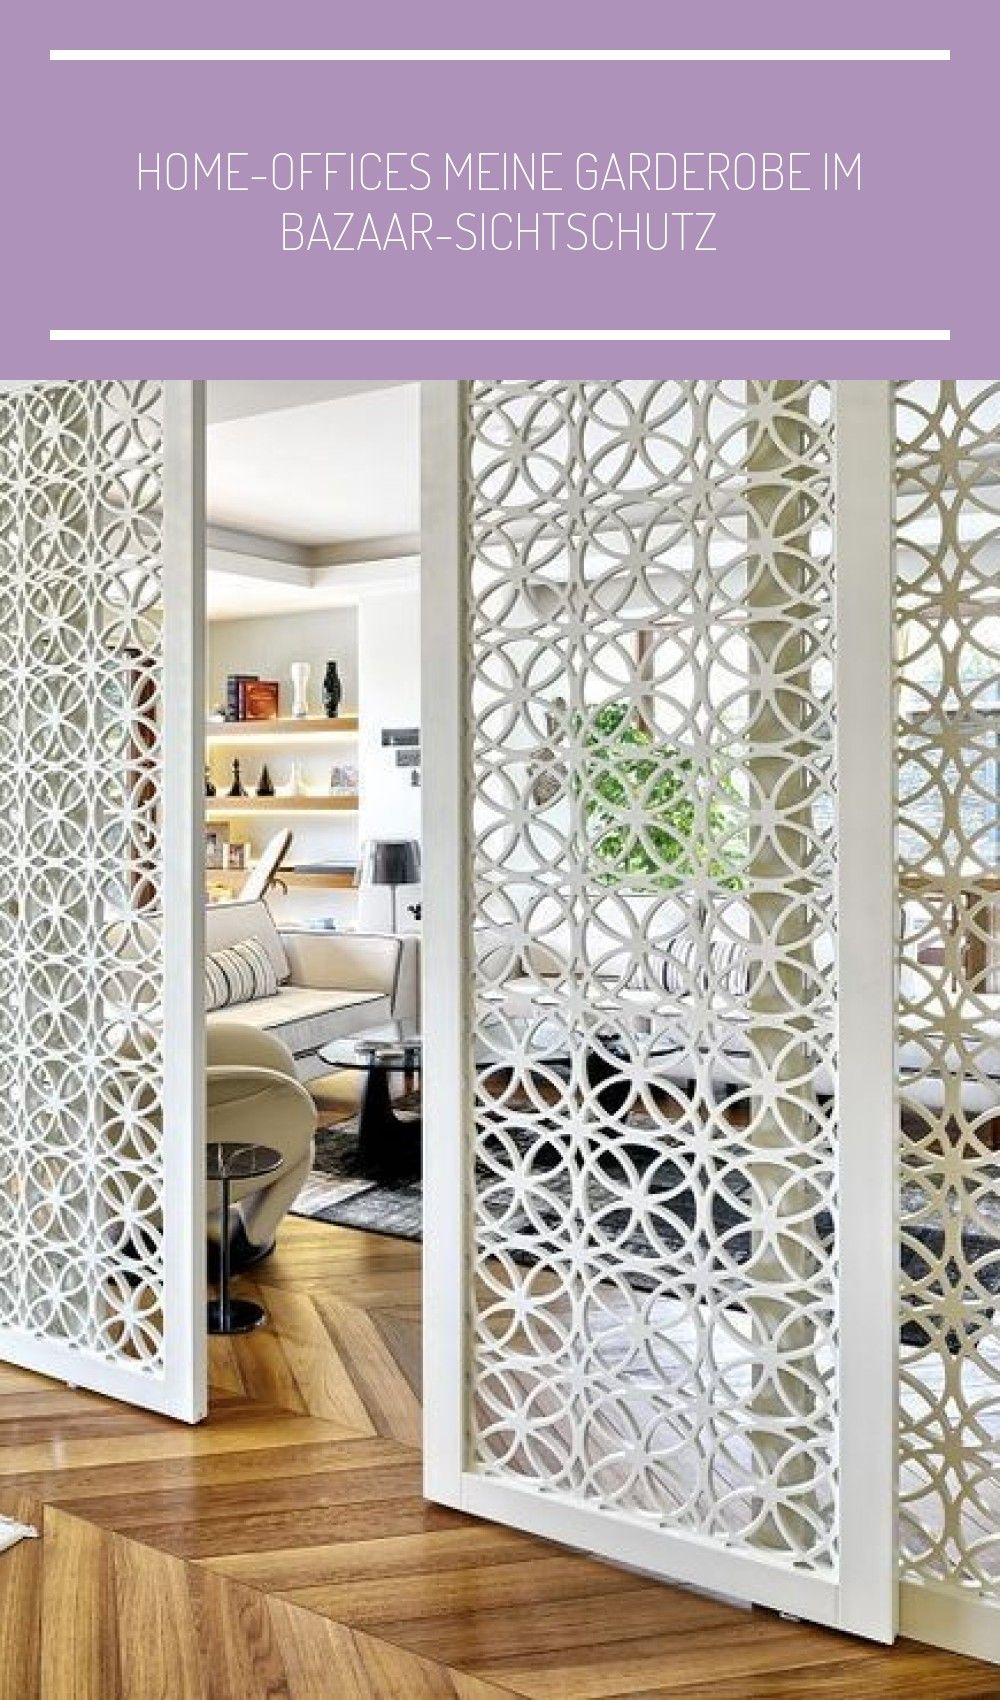 Sichtschutz Schlafzimmer Home-offices Meine Garderobe Im Bazaar-sichtschutz #bazaar #garderobe #meine #offices #sichtschutz #decor #einrichtungsideen … | Divider, Home Office, Motif Design